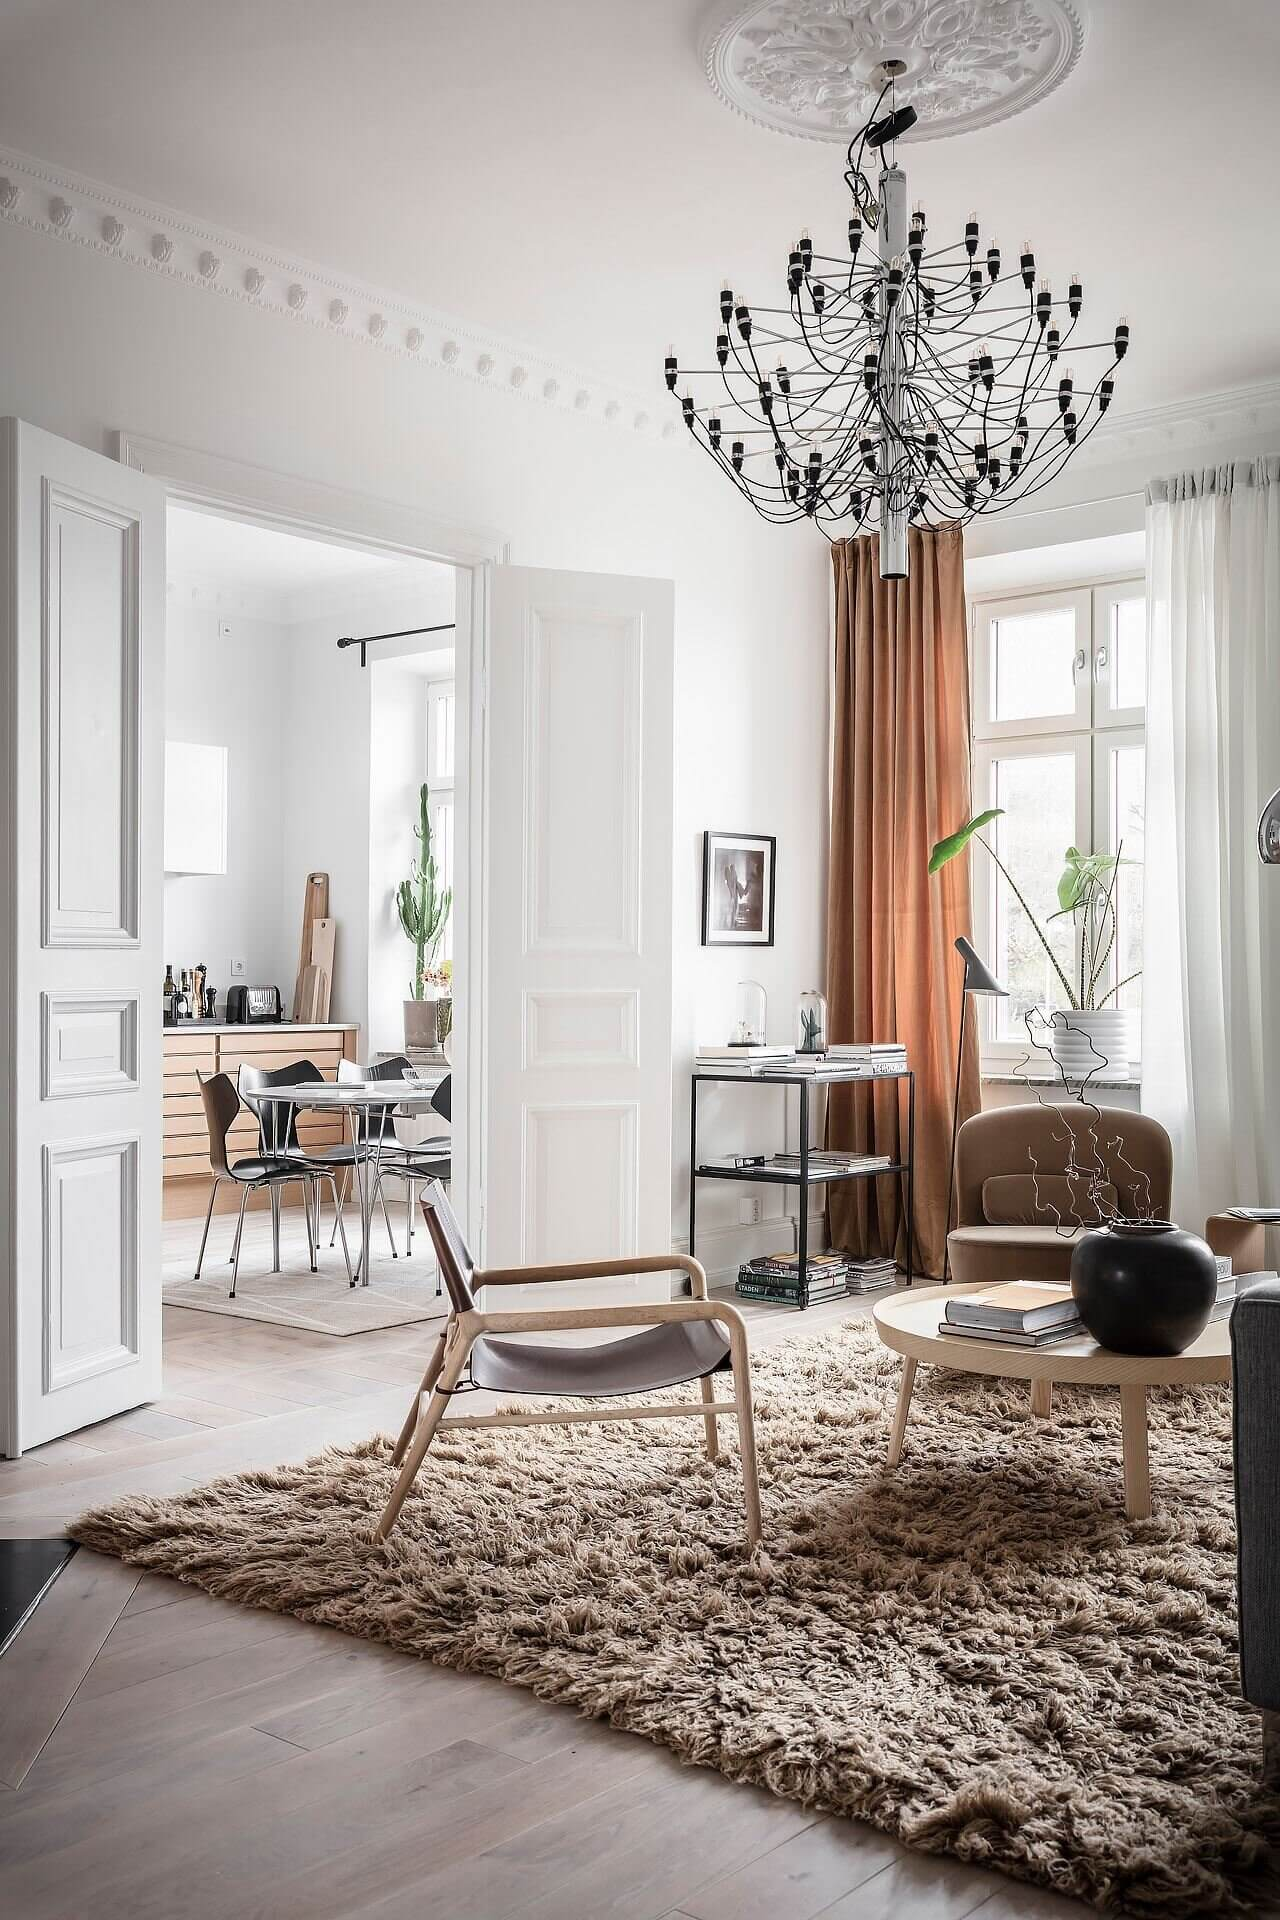 A Scandinavian Apartment with Earthy Color Details